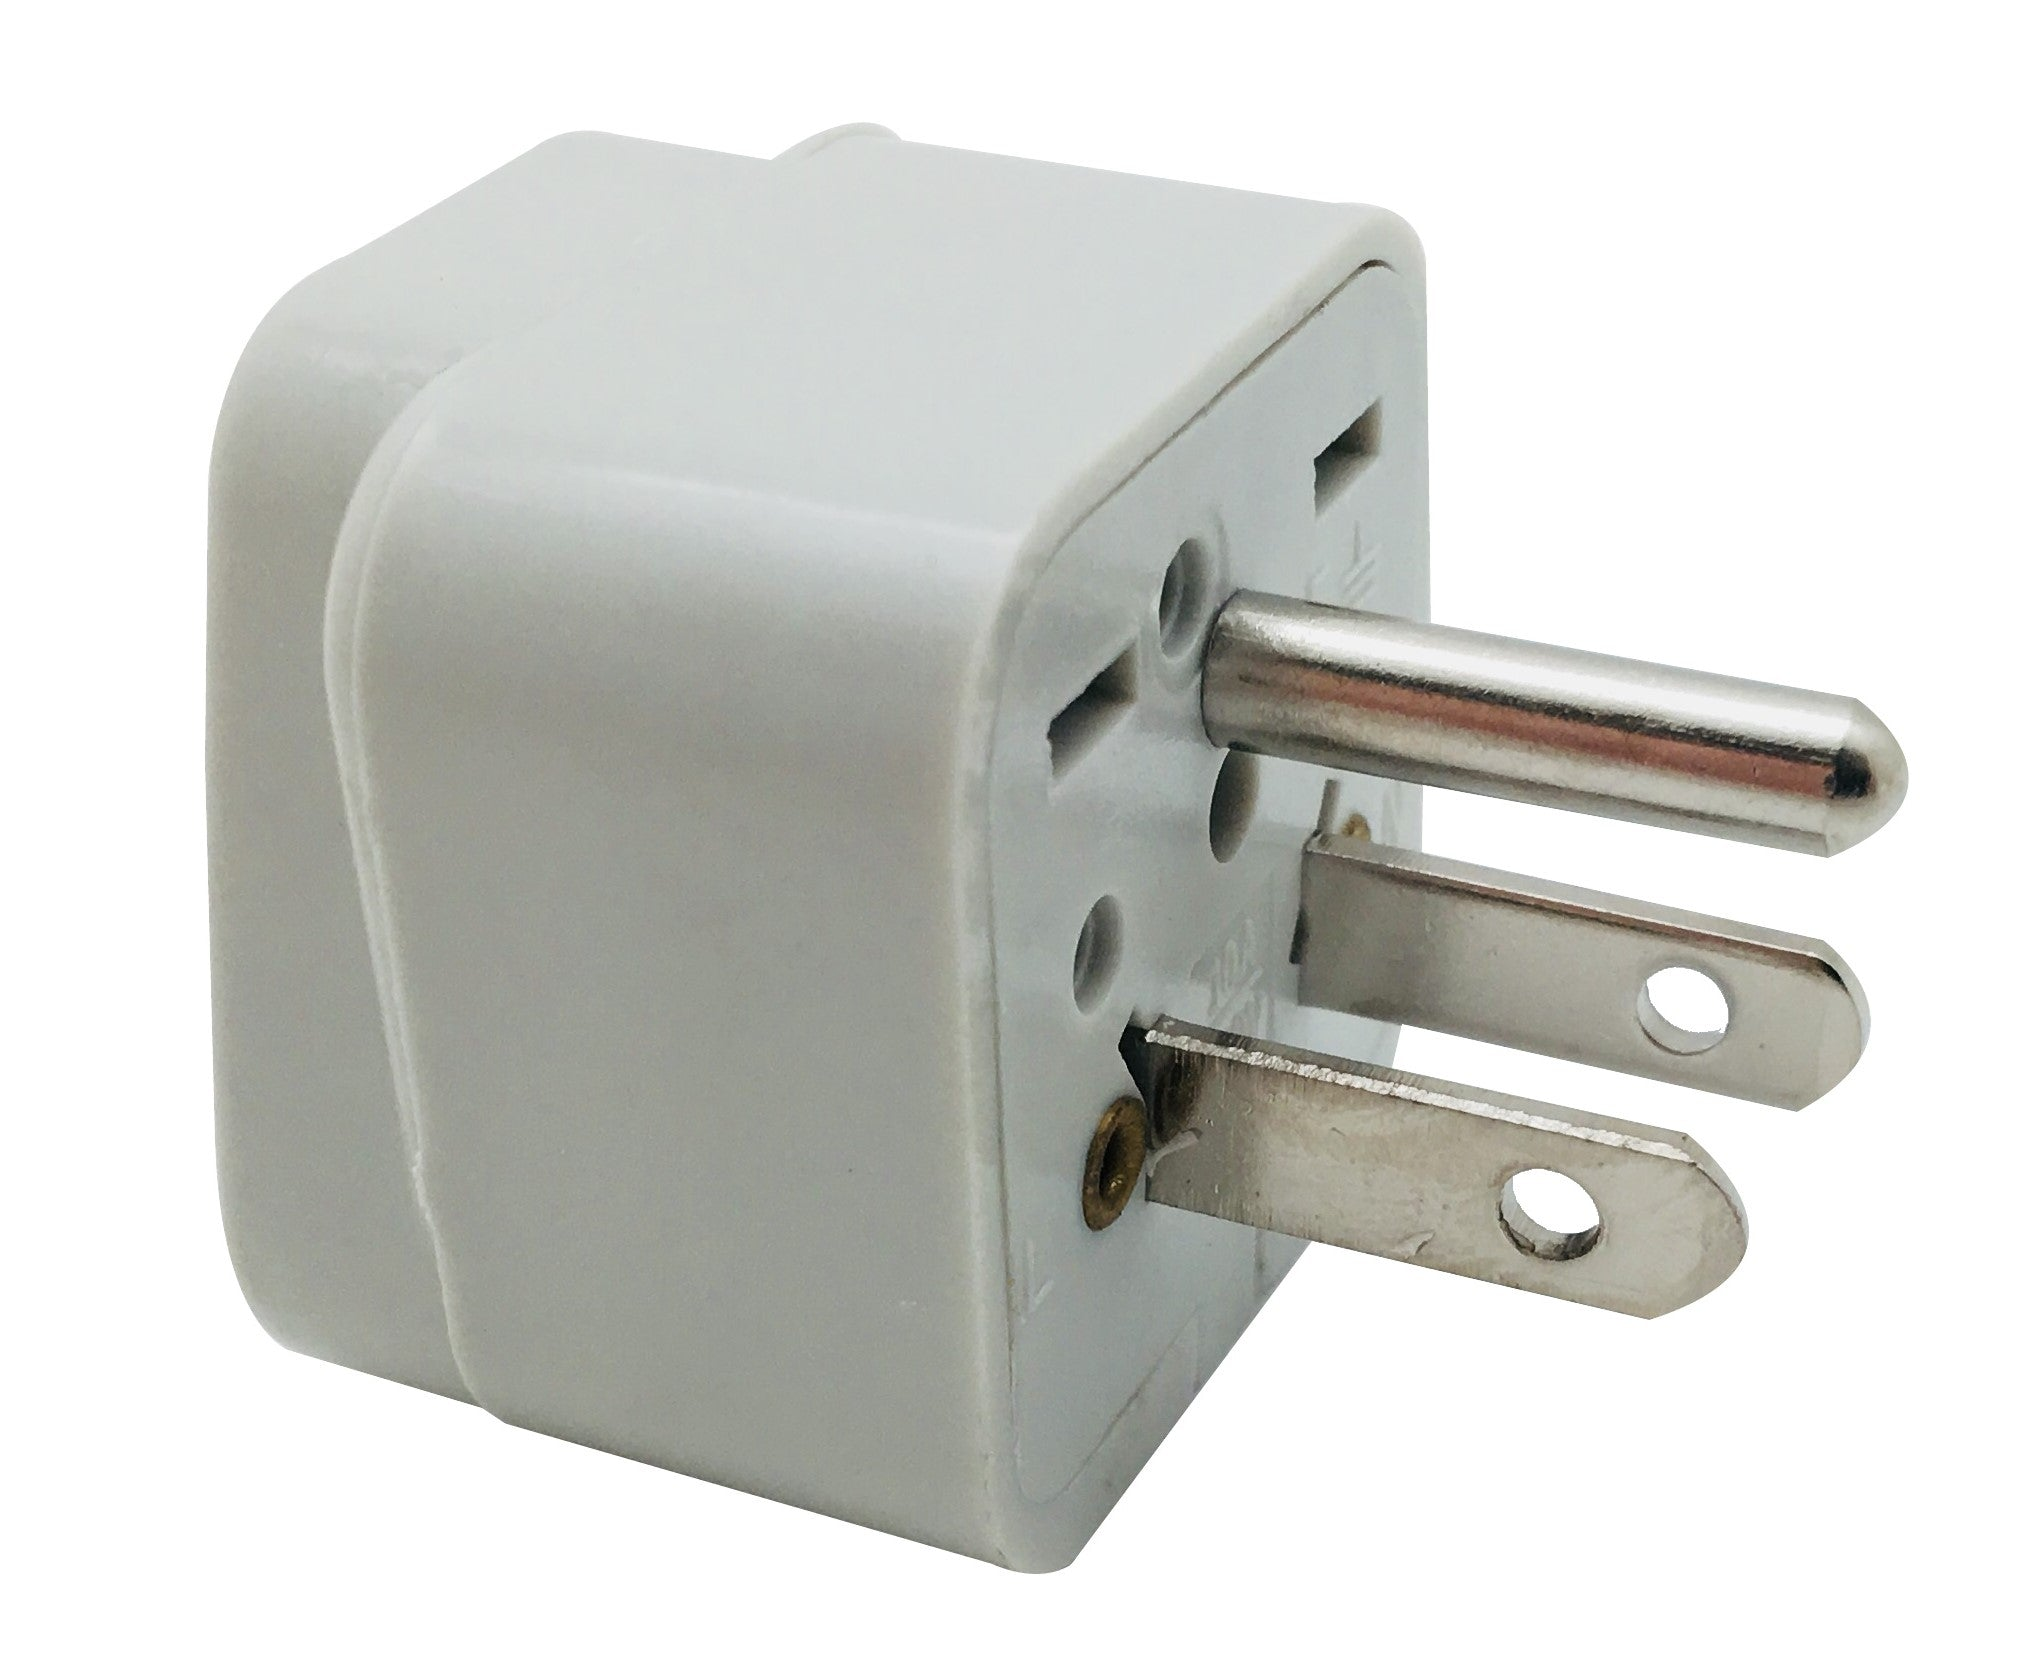 42-0306 Universal Power Plug Adapter: Flat blade attachment plug